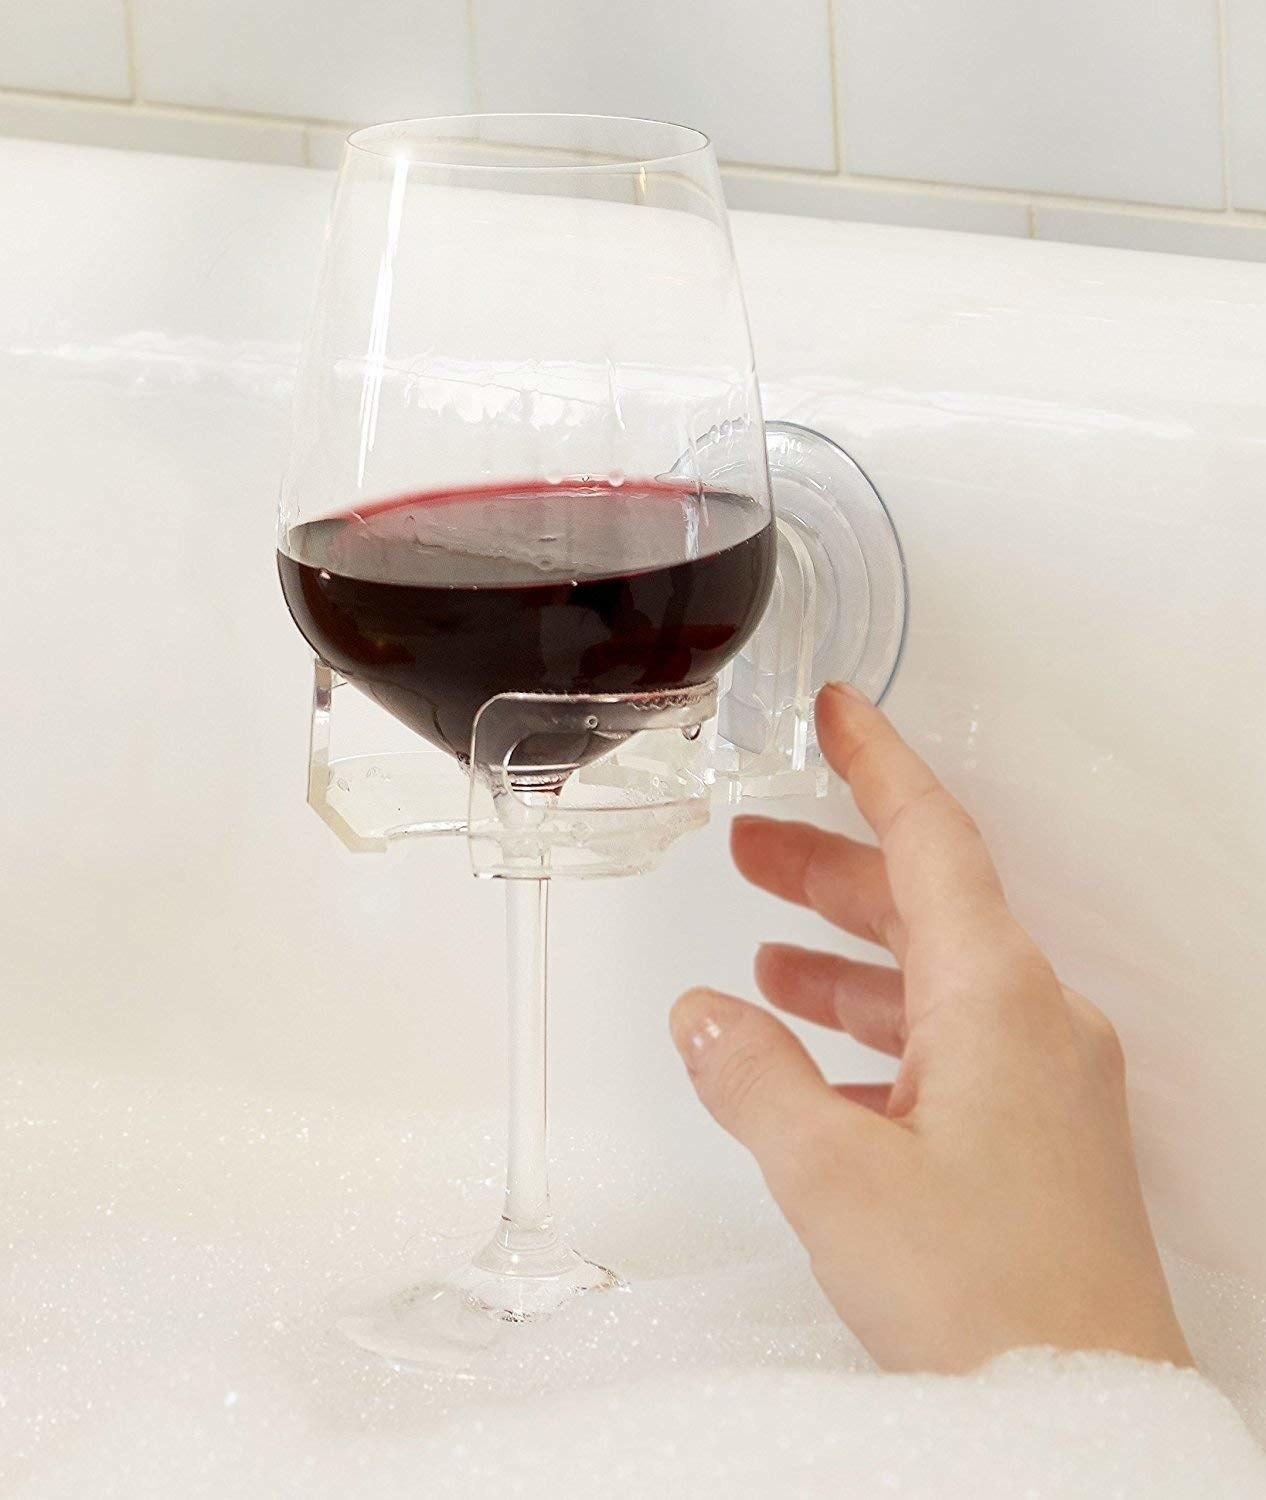 Tthe clear holder suctioned to the side of the tub with a glass of red wine in it and a hand reaching for it